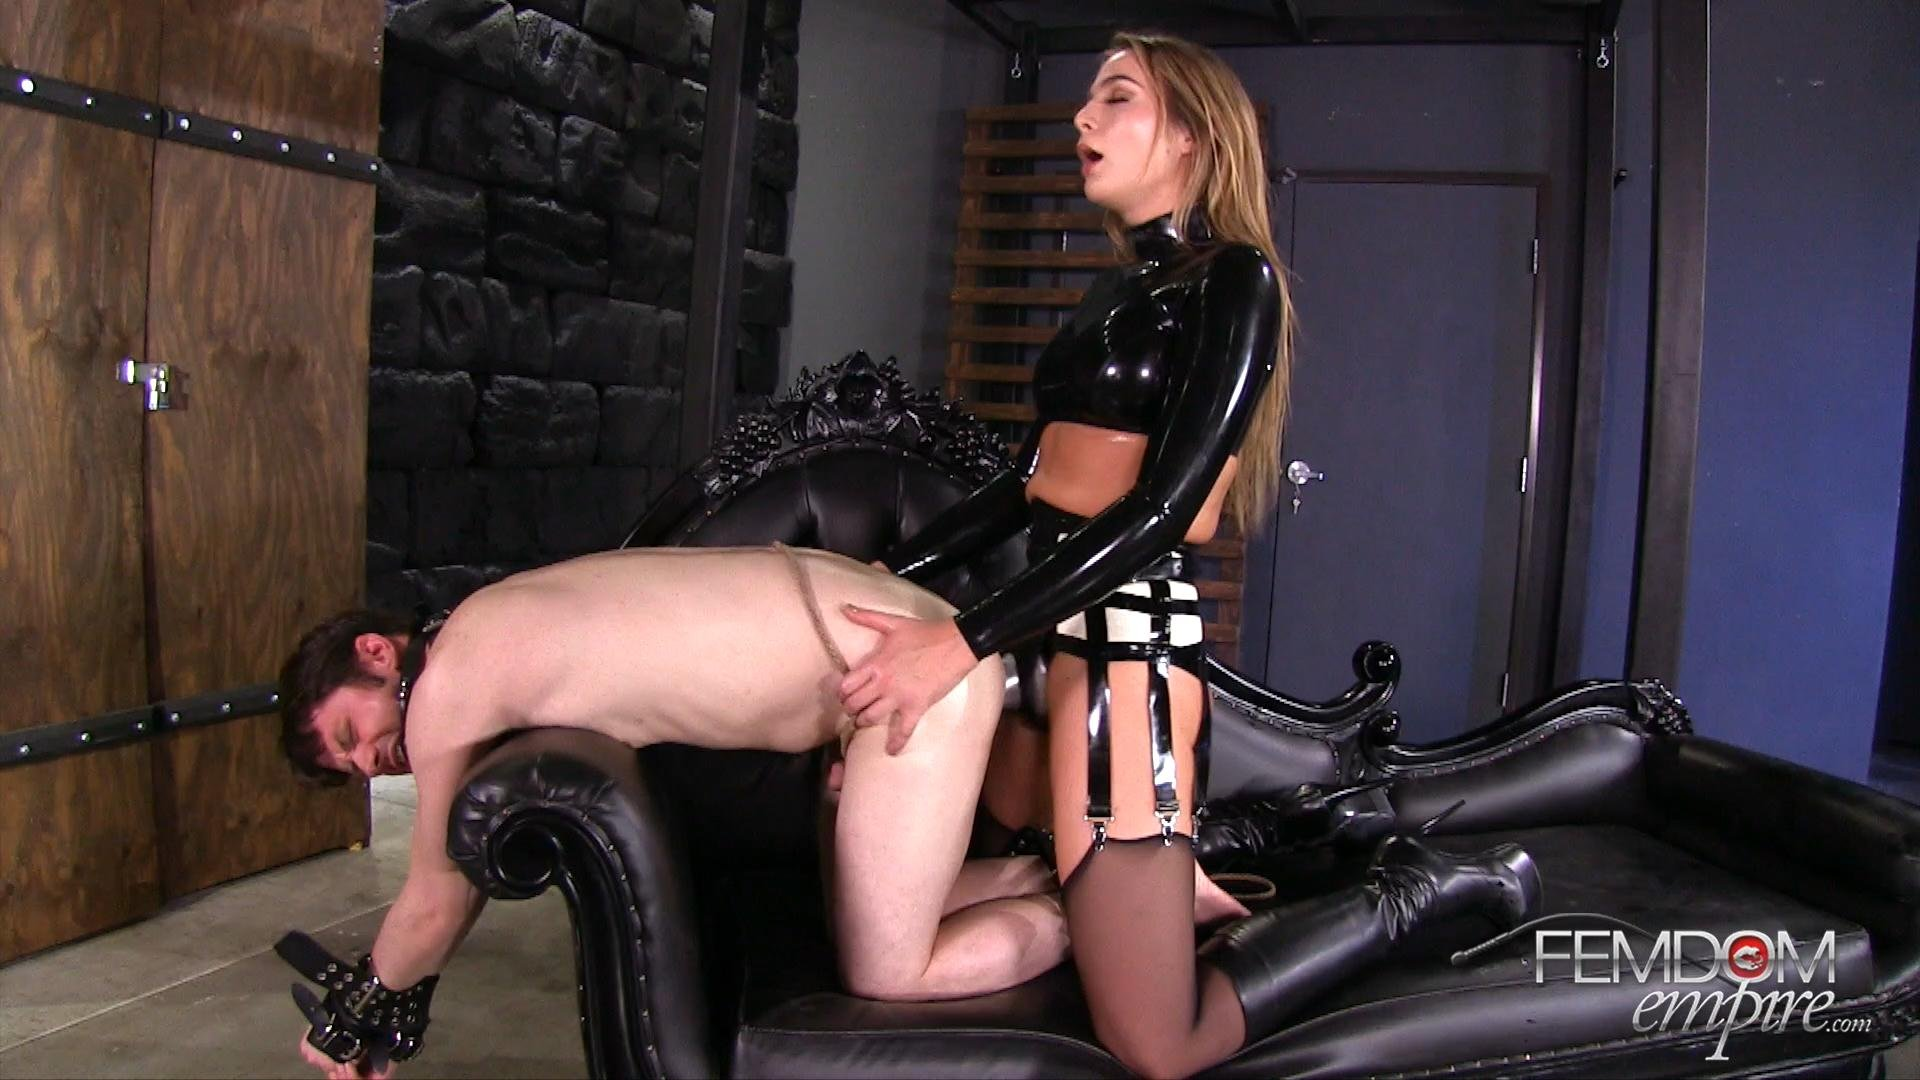 Mistress Jane Has Her Femdom Friend Join Her To Dominate This Pathetic Sissybiy Gallery